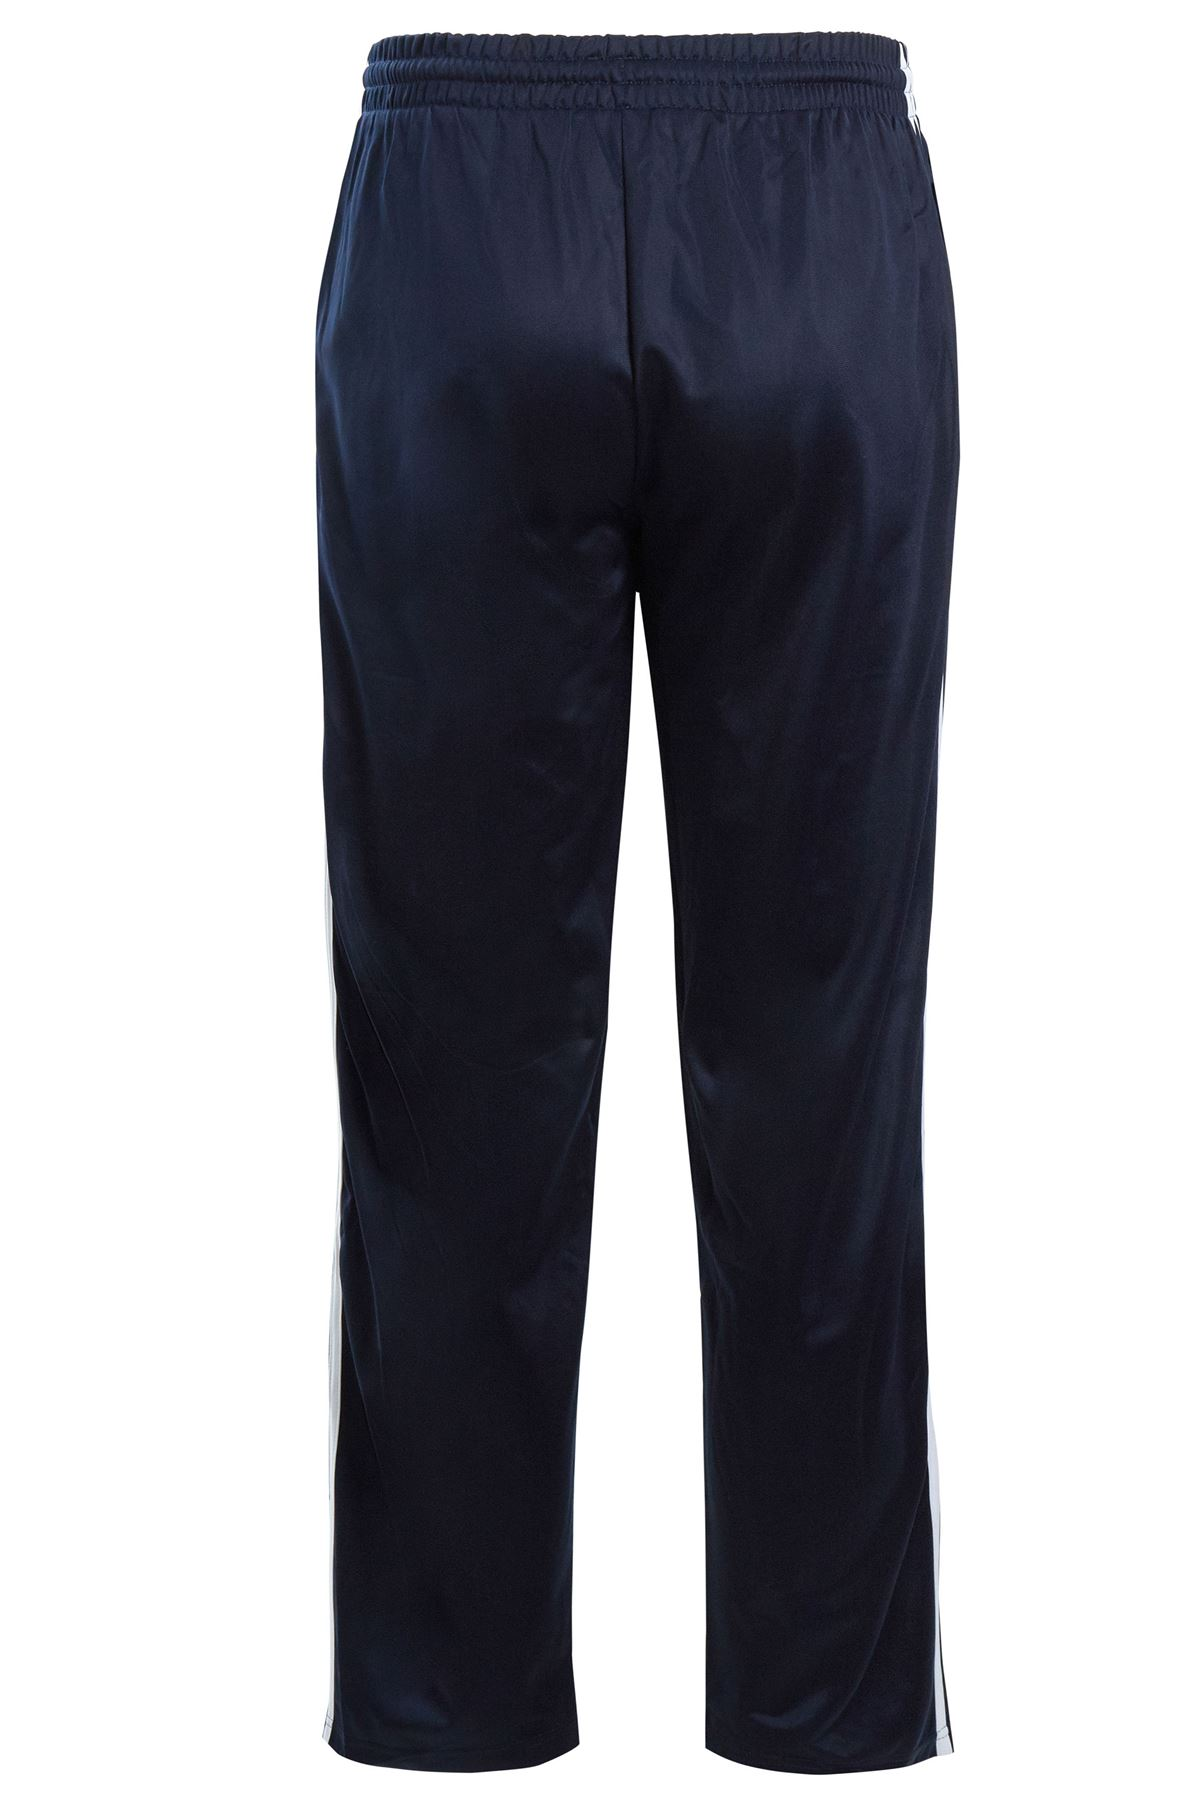 Mens-Tracksuit-Joggers-Jogging-Striped-Gym-Sports-Silky-Bottoms-Trousers-Pants thumbnail 16